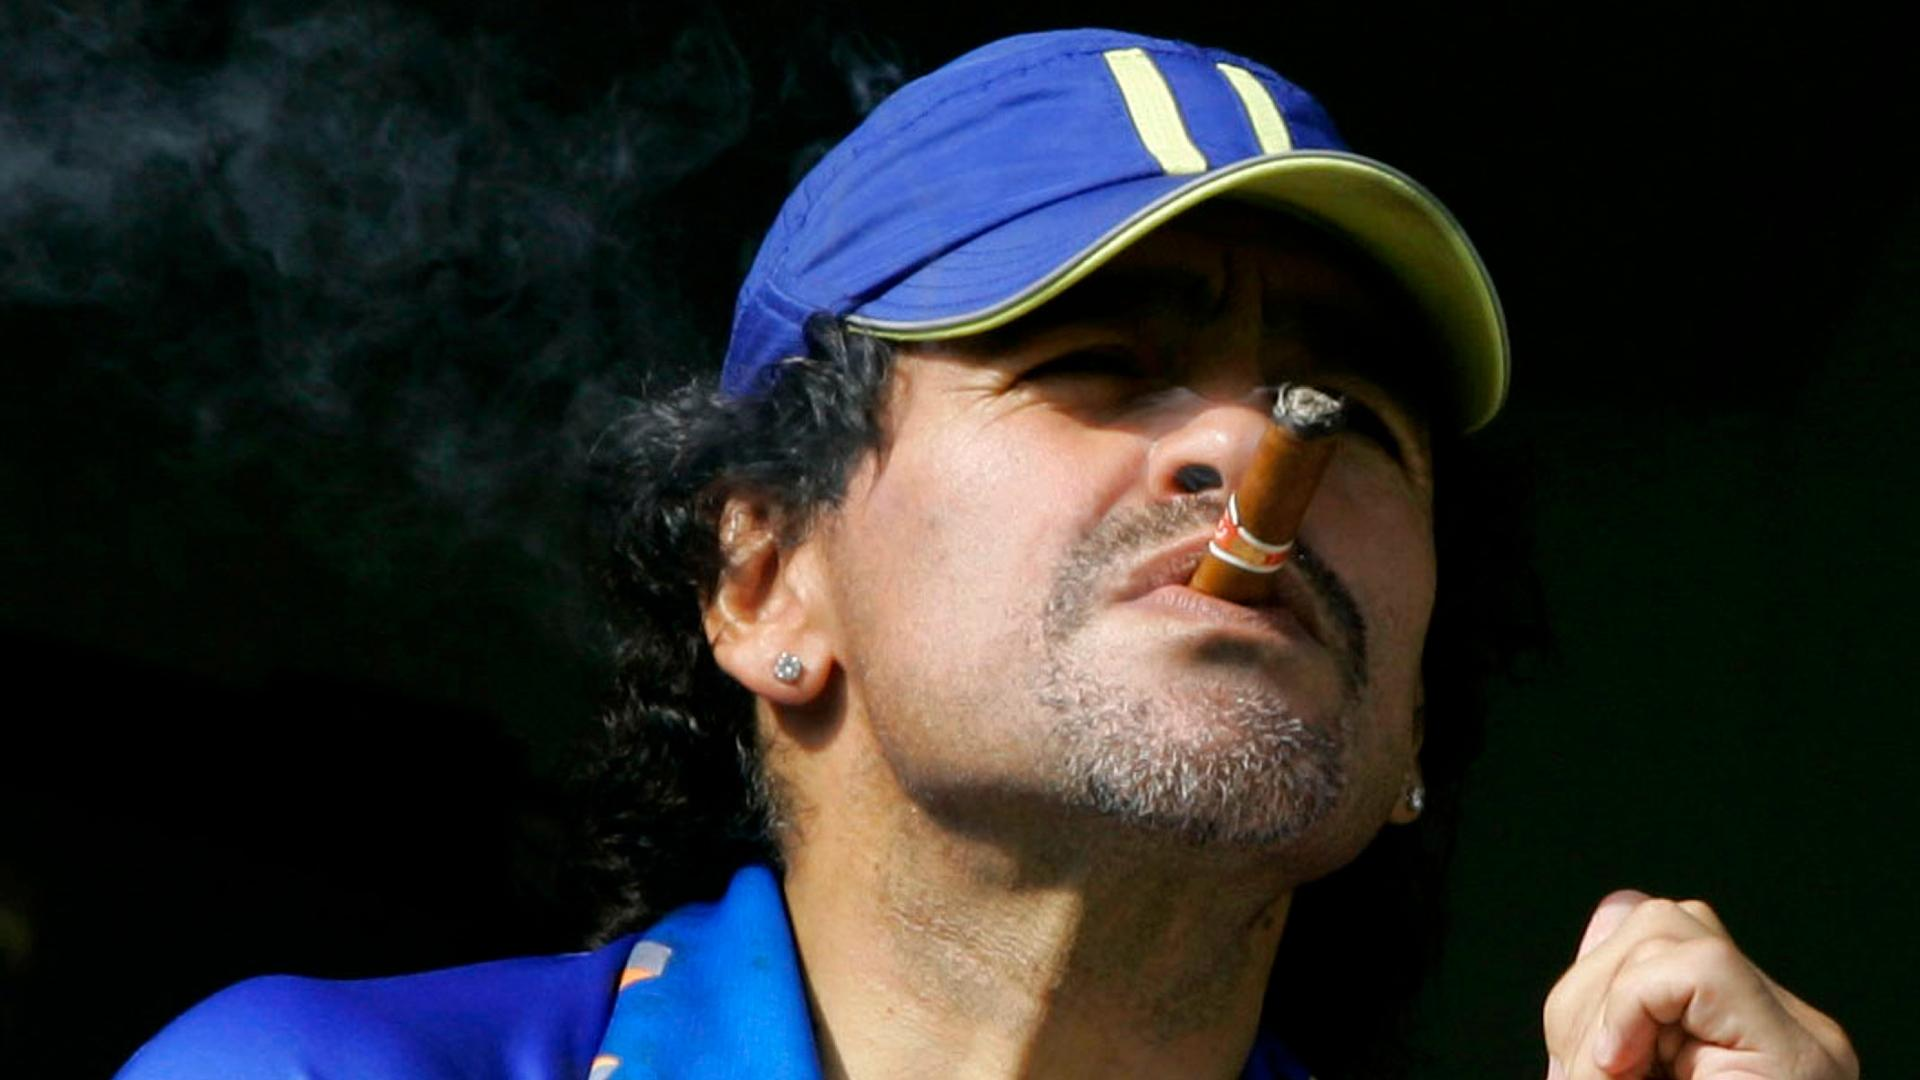 In this March 26, 2006 file photo, former soccer player Diego Maradona smokes a cigar as he watches Argentina's first division soccer match between Boca Juniors and River Plate in Buenos Aires, Argentina. (AP Photo / Natacha Pisarenko, File)